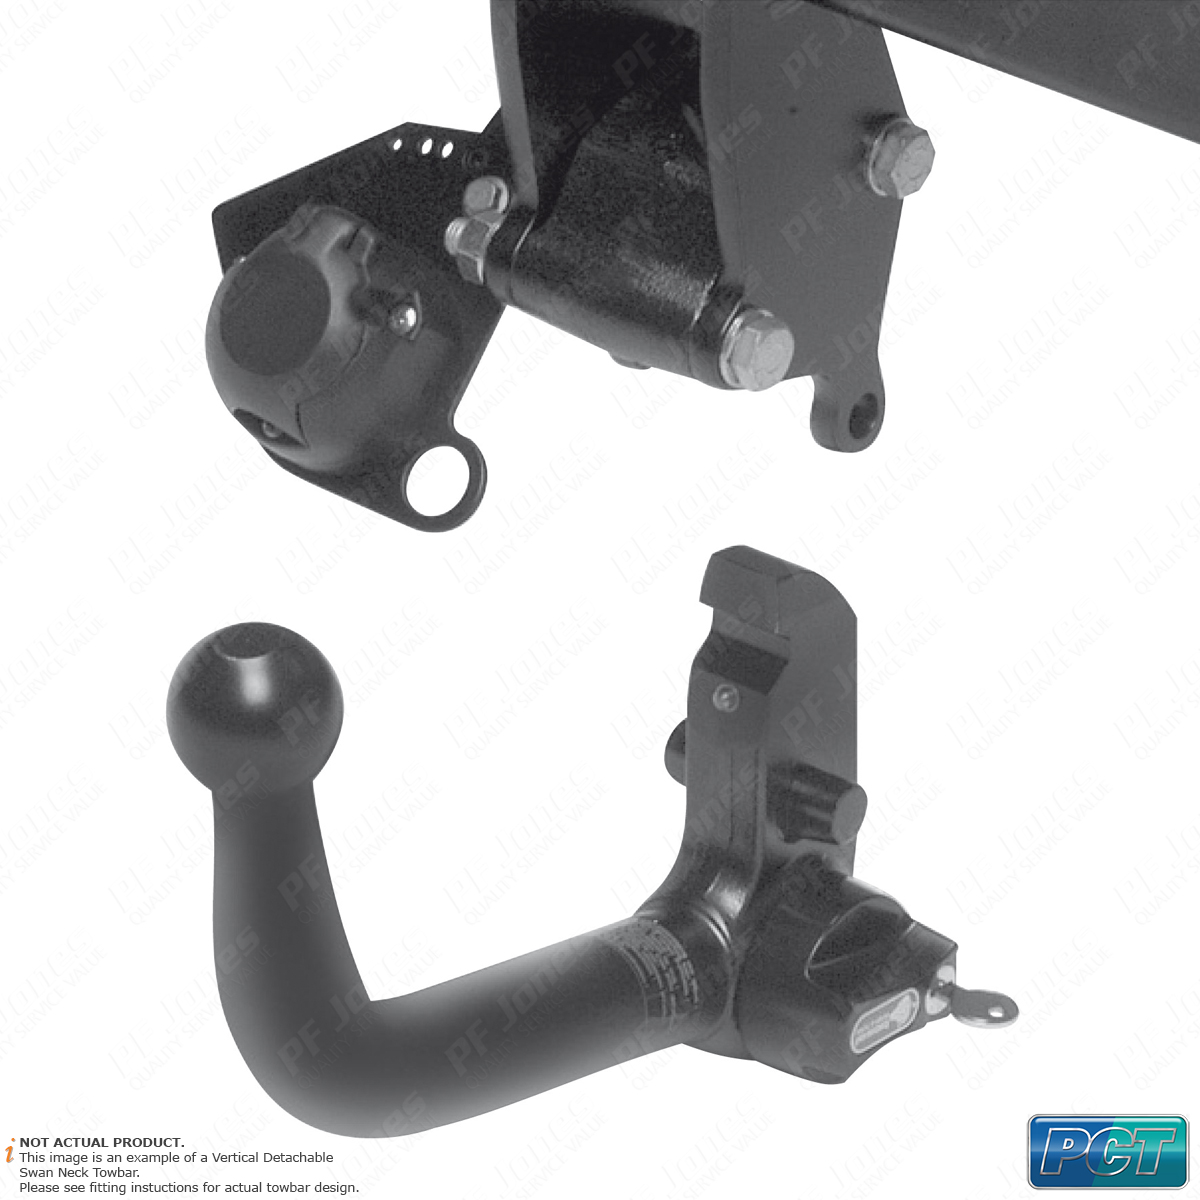 Detachable Swan Neck Tow Bar PCT Towbar for Ford S-Max MPV 2006-2015